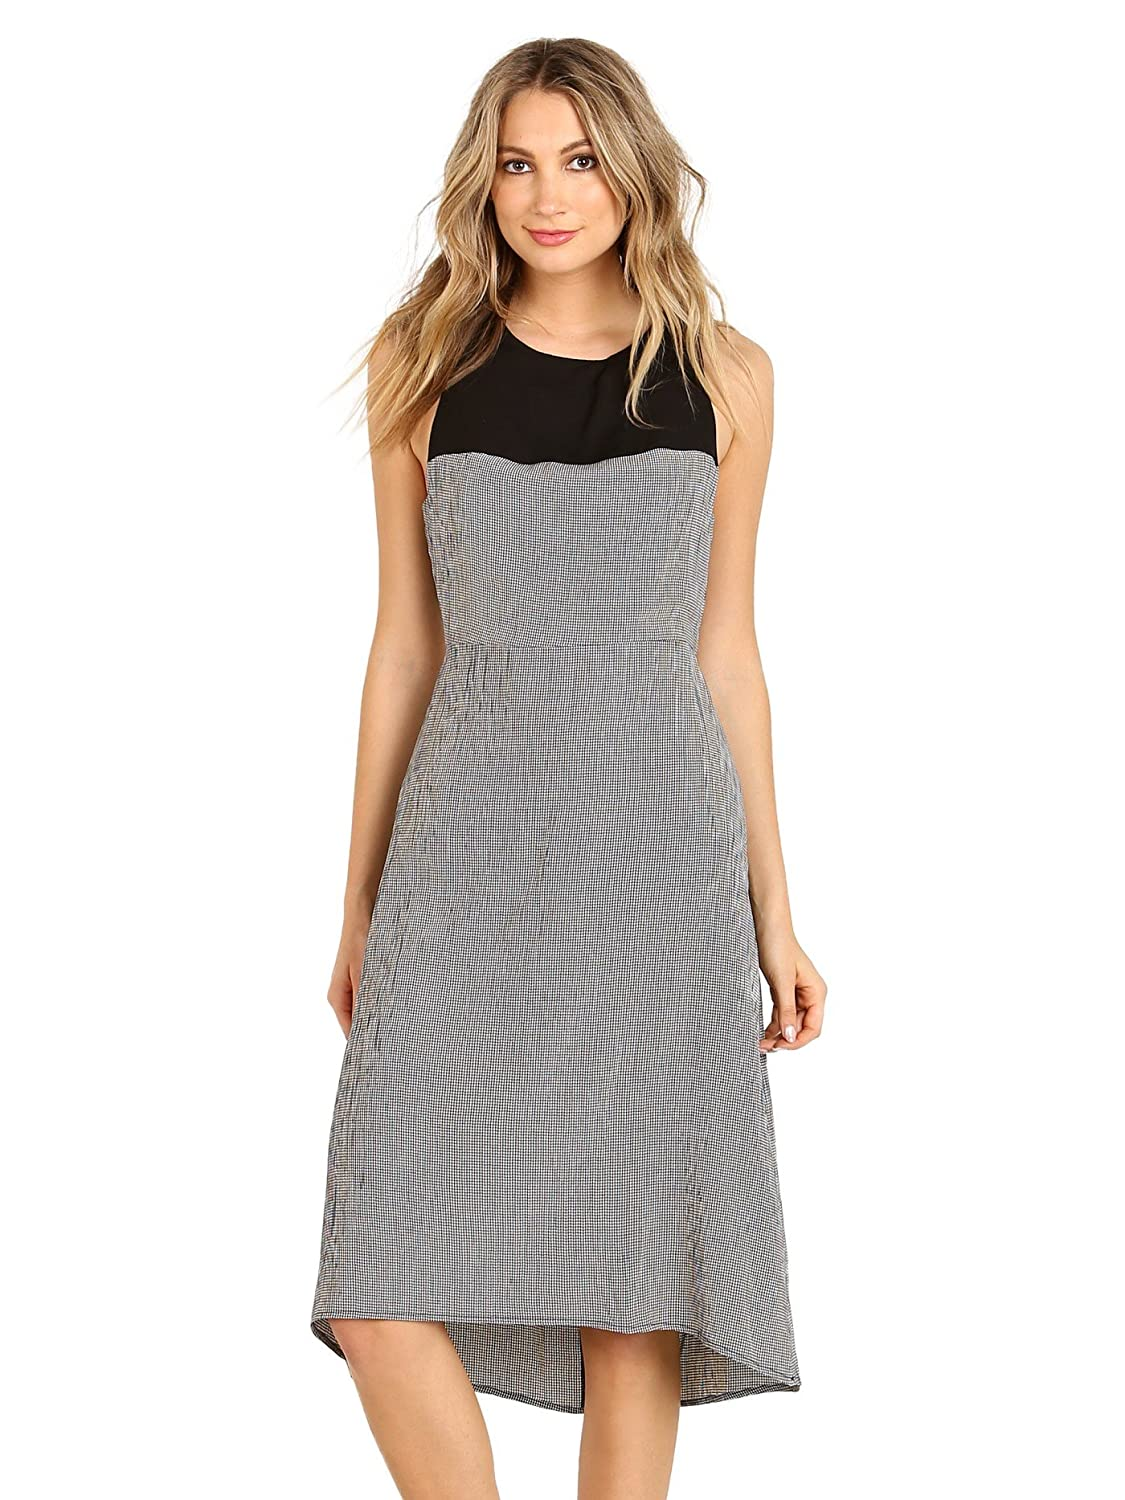 dca992b88c Christy Dawn The Forrest Dress Black   White at Amazon Women s Clothing  store